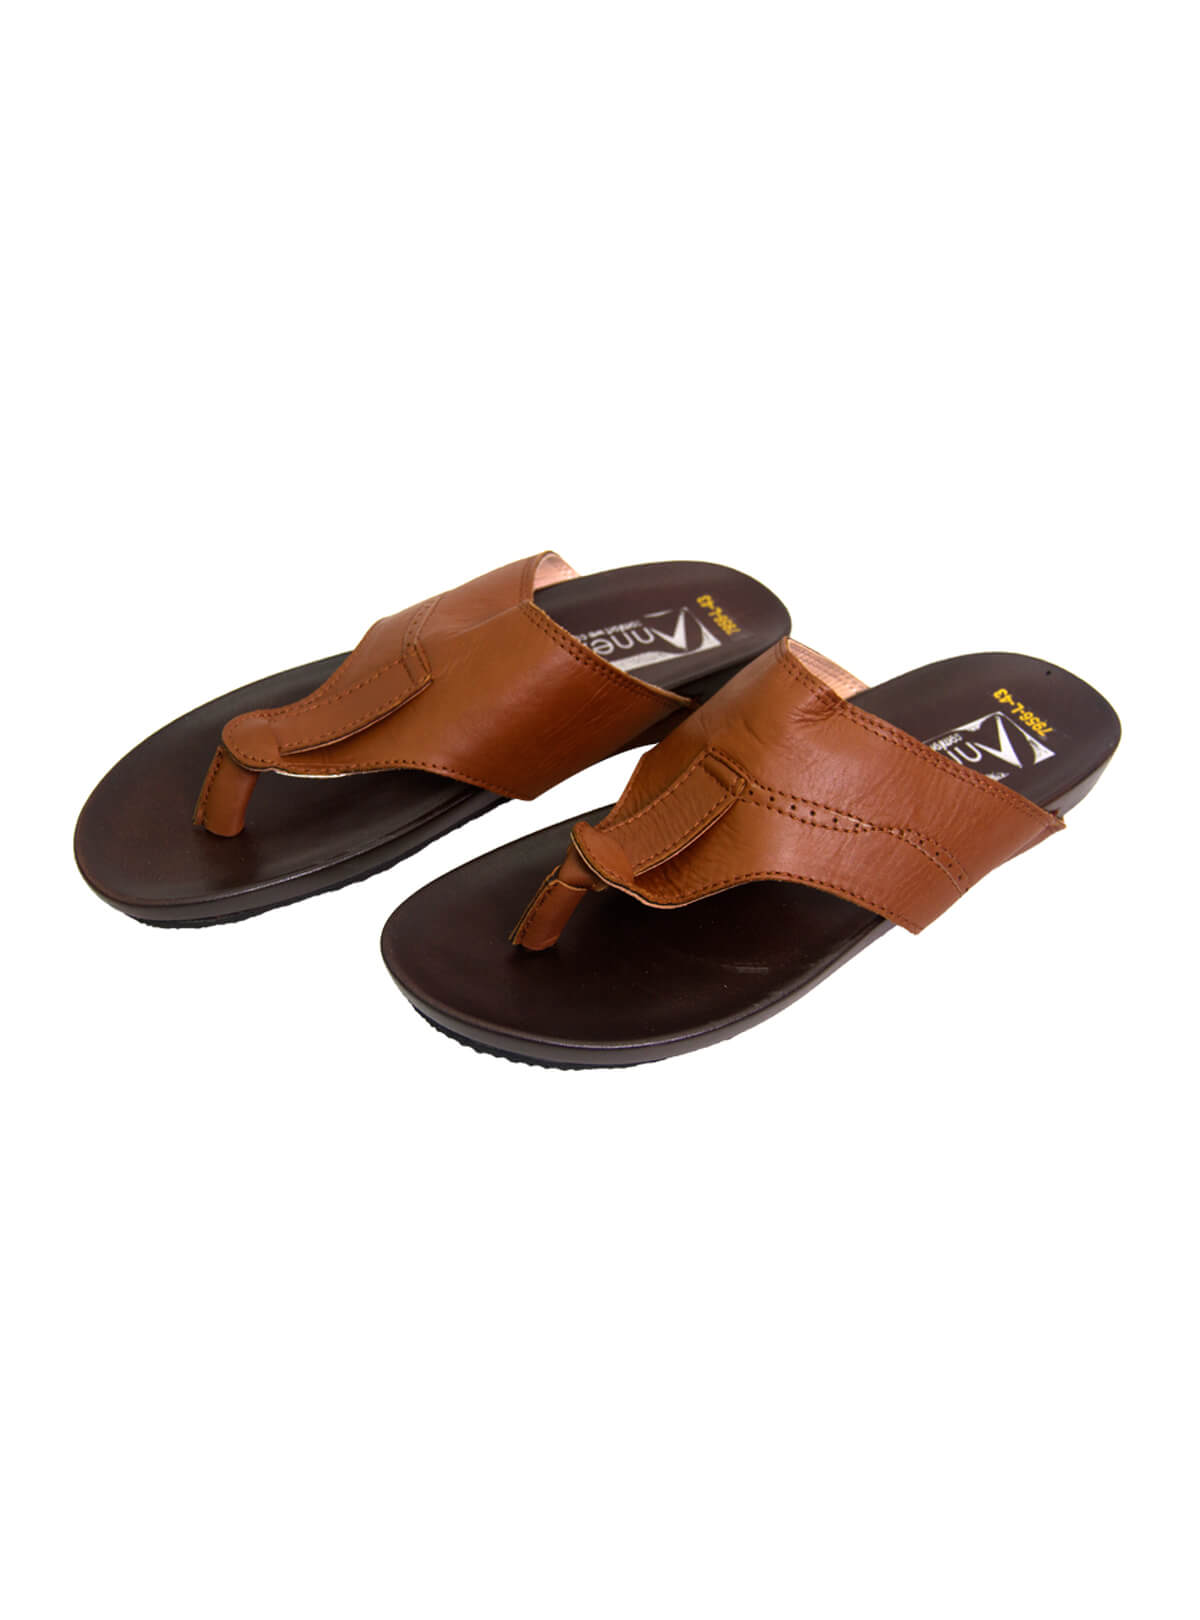 Saddle Brown Complete Sole Gent's Sandal